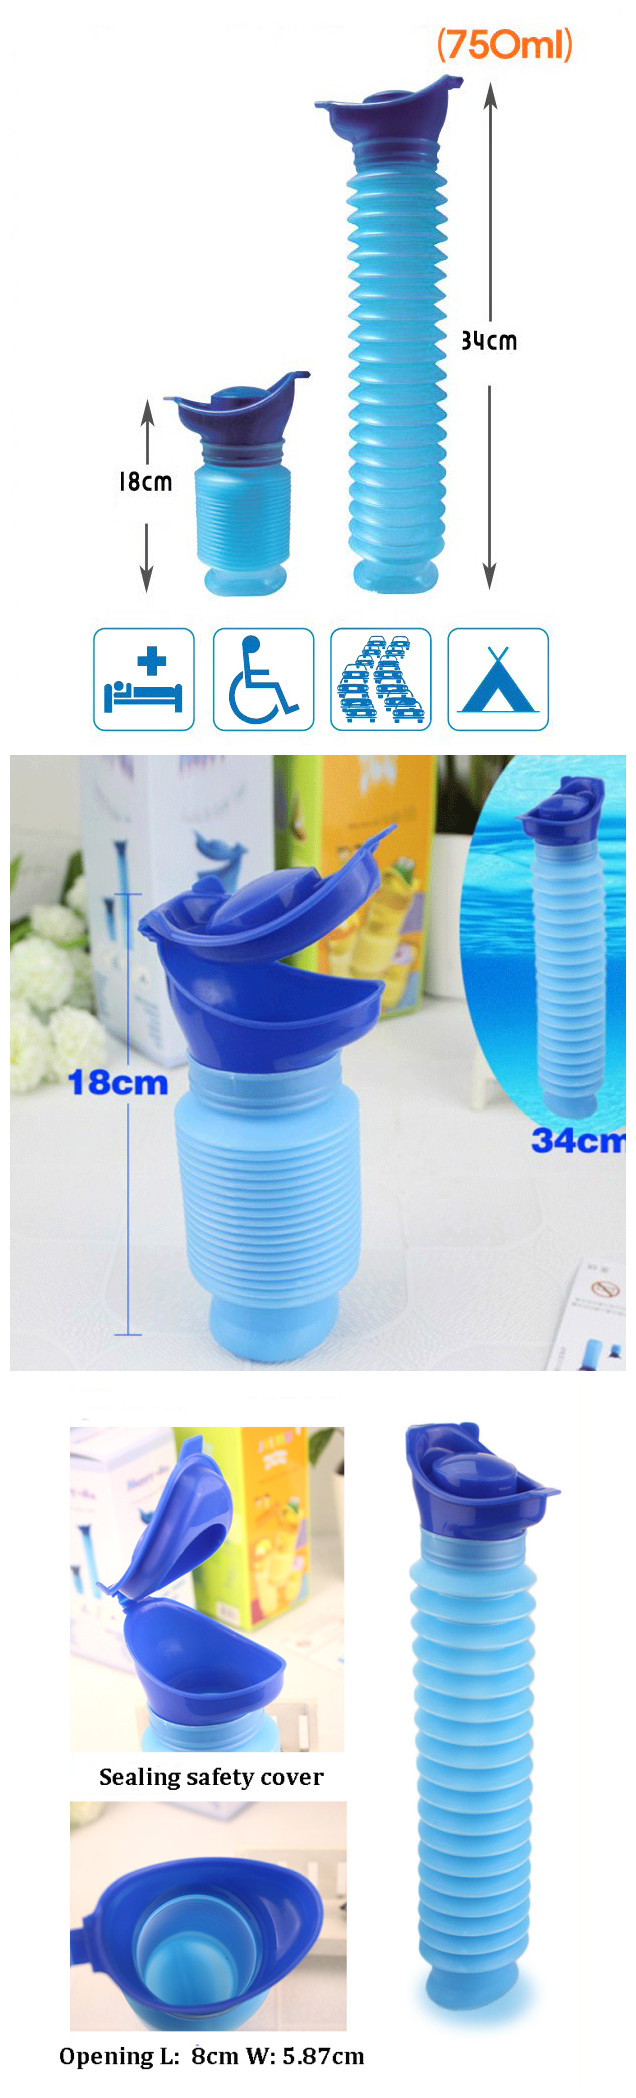 IPRee™ 750ml Portable Kids Toilet Convenience Potty Baby Urinal Boy Telescopic Emergency Pee Bottle